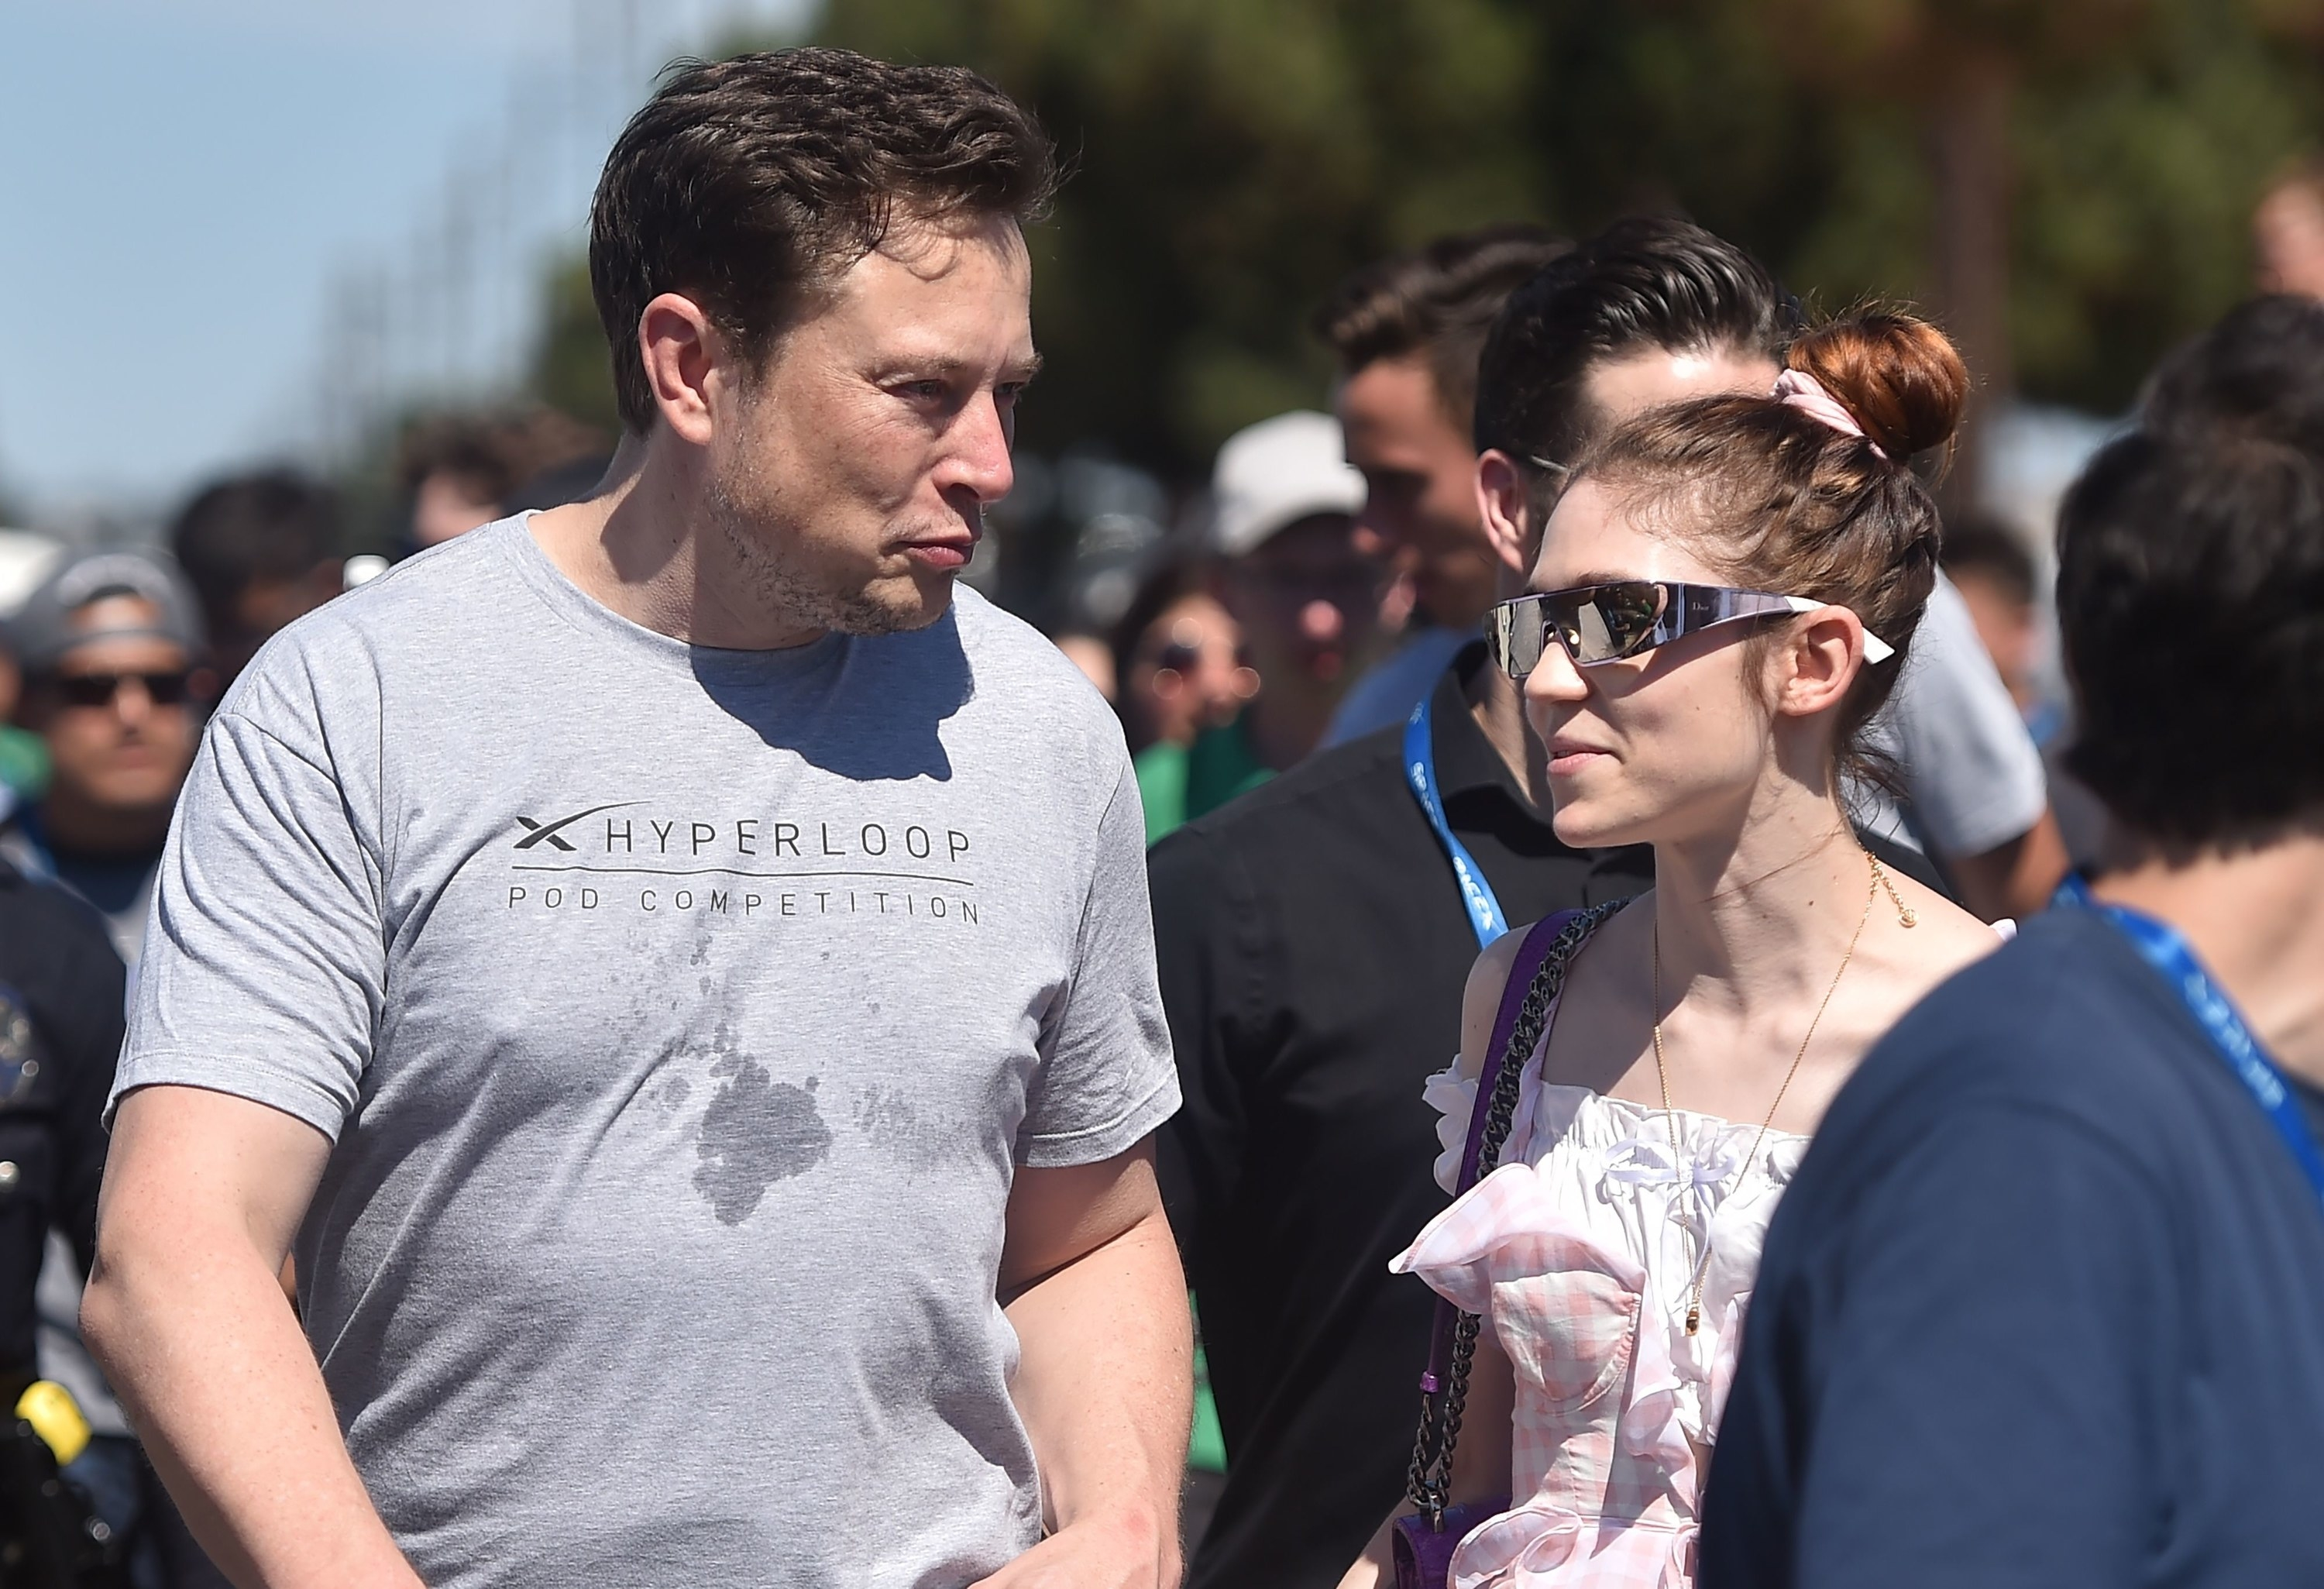 SpaceX founder Elon Musk and Canadian musician Grimes